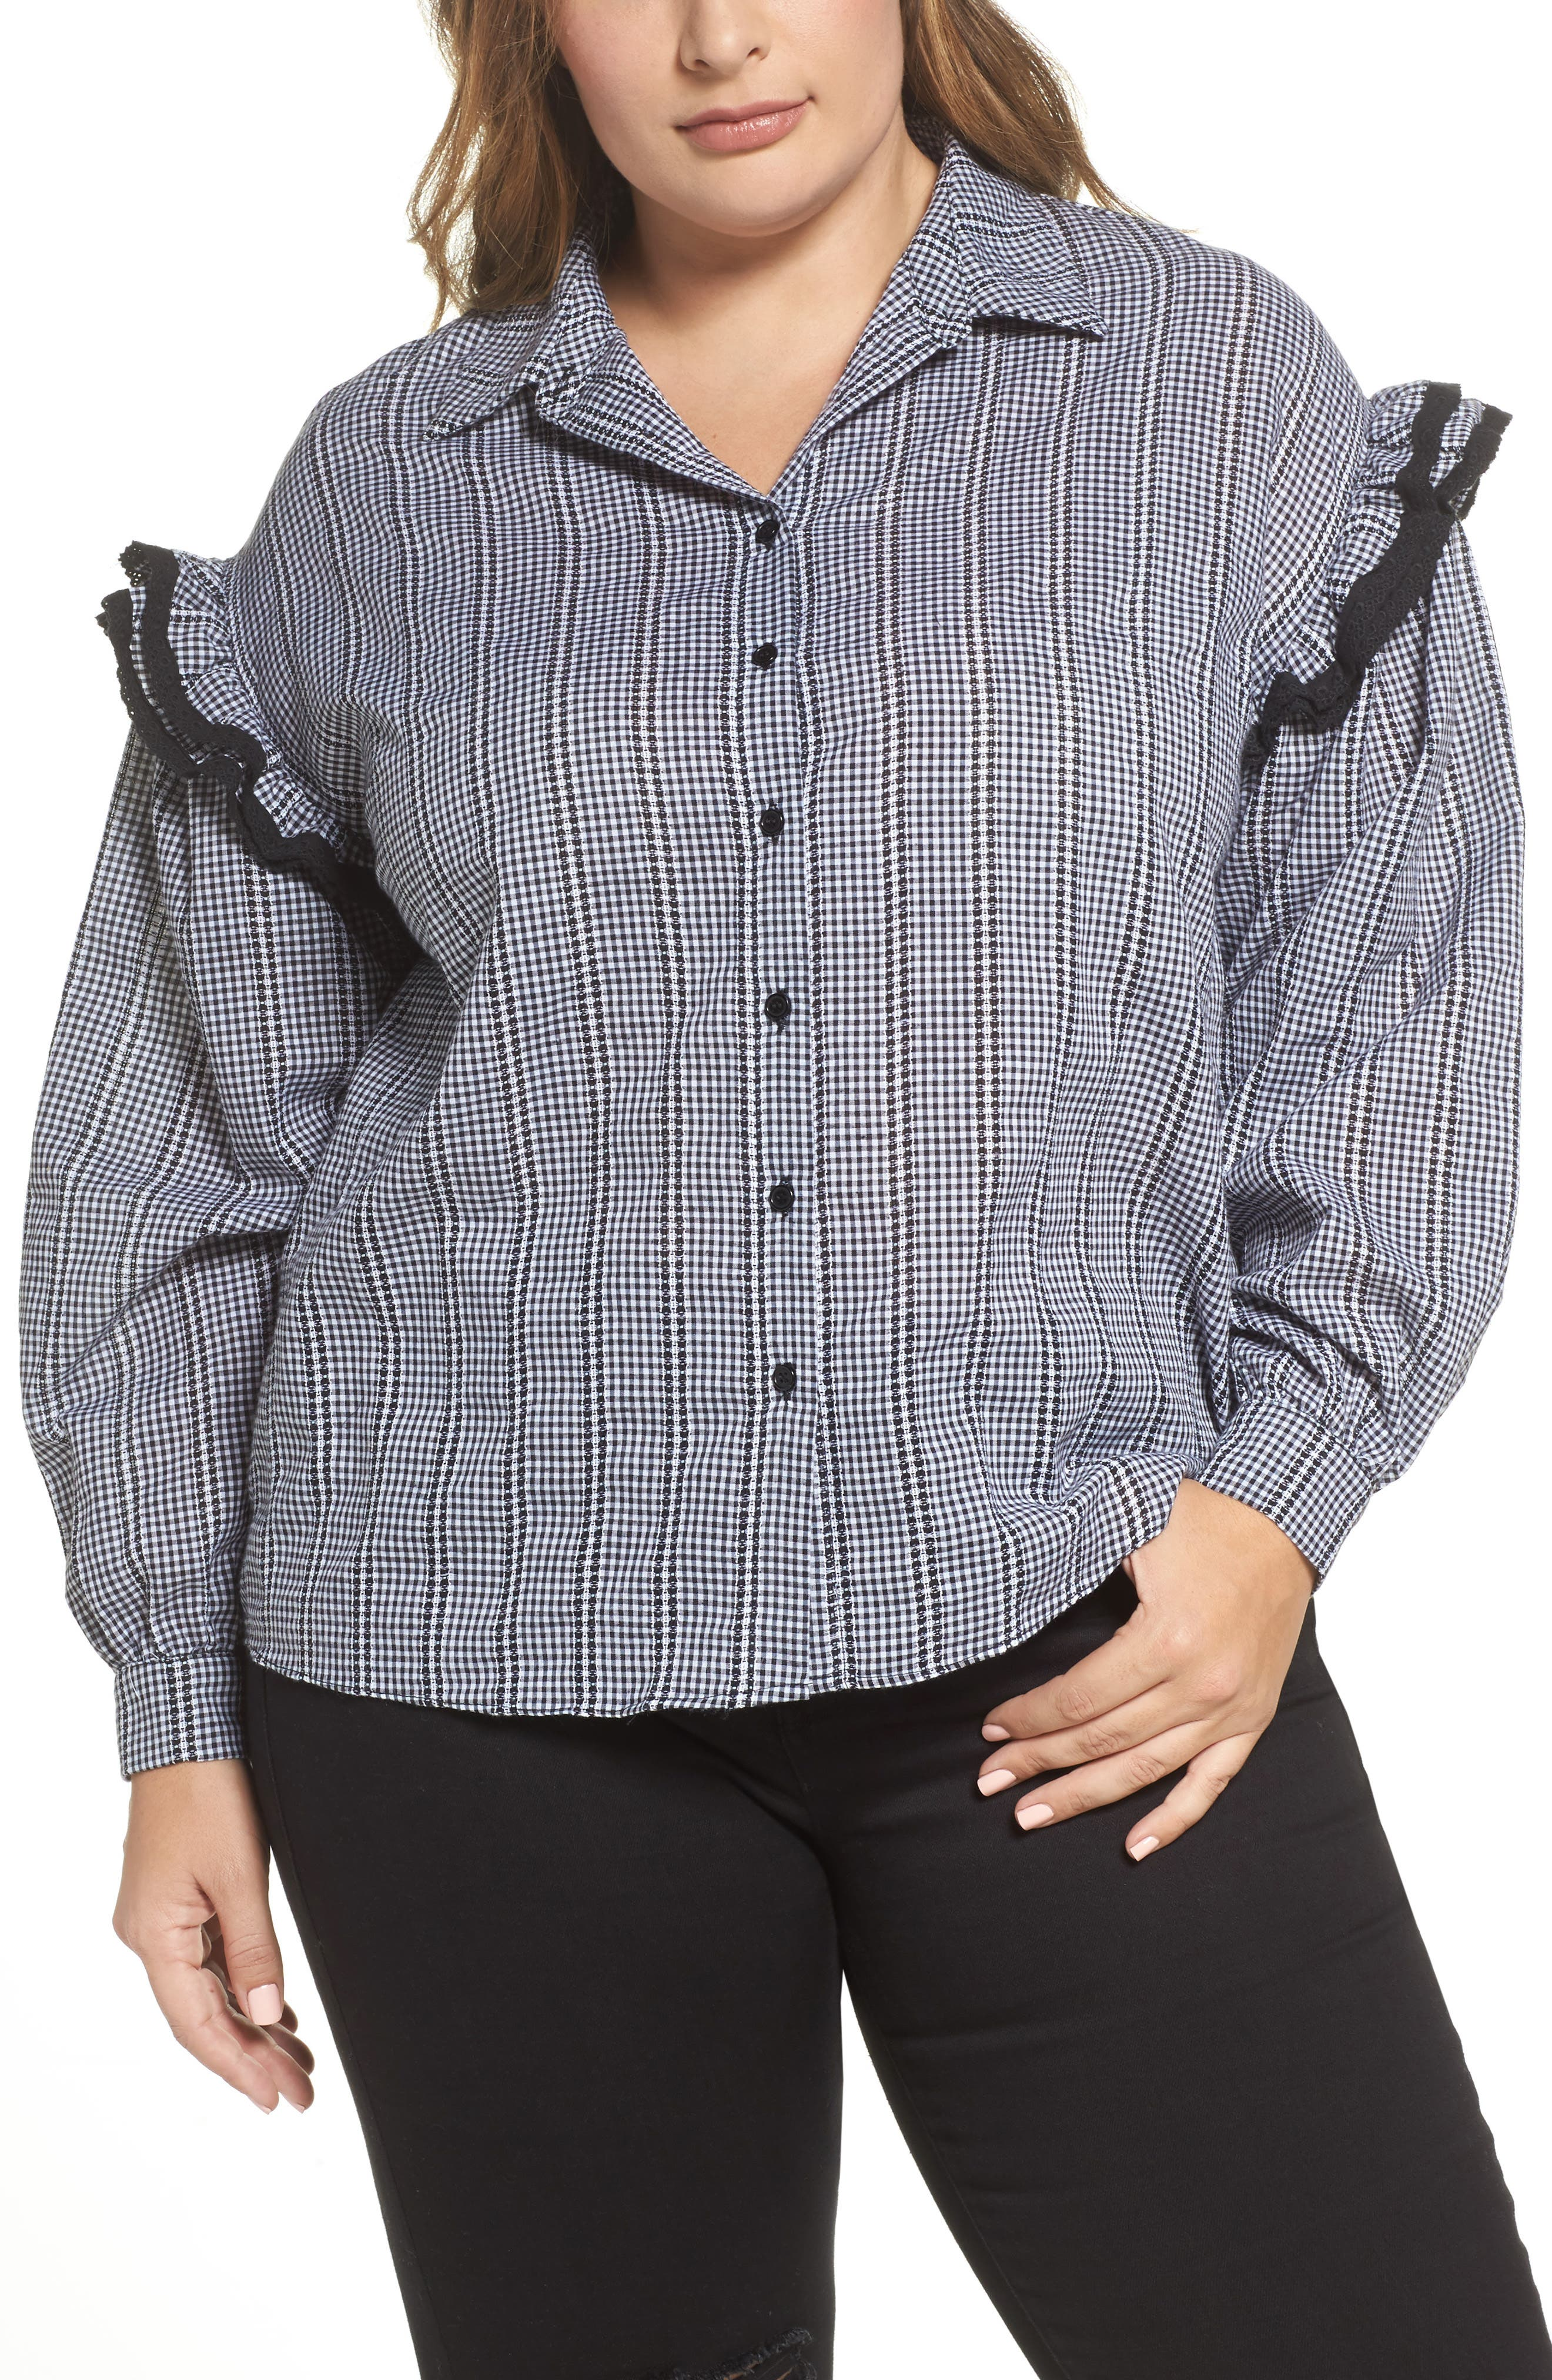 Gingham Ruffle Sleeve Shirt,                         Main,                         color, Multi